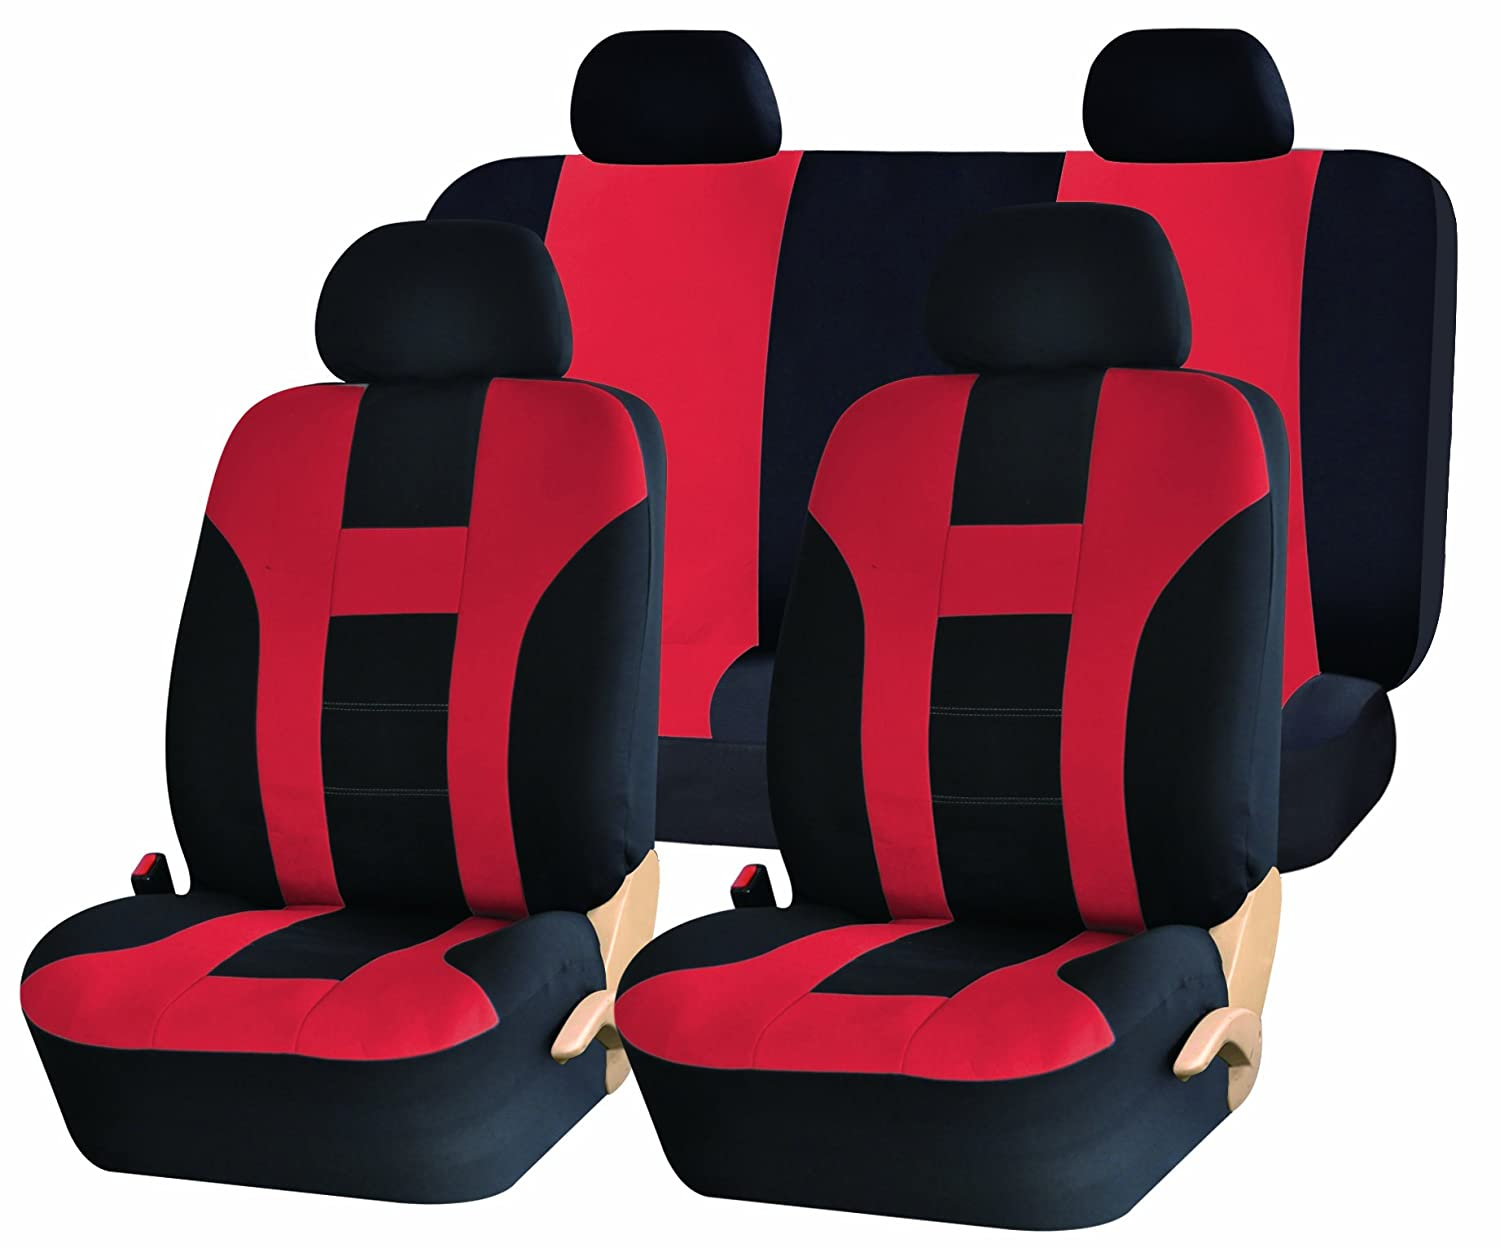 Racing Style Black And Red Vinyl Car Recliner Universal